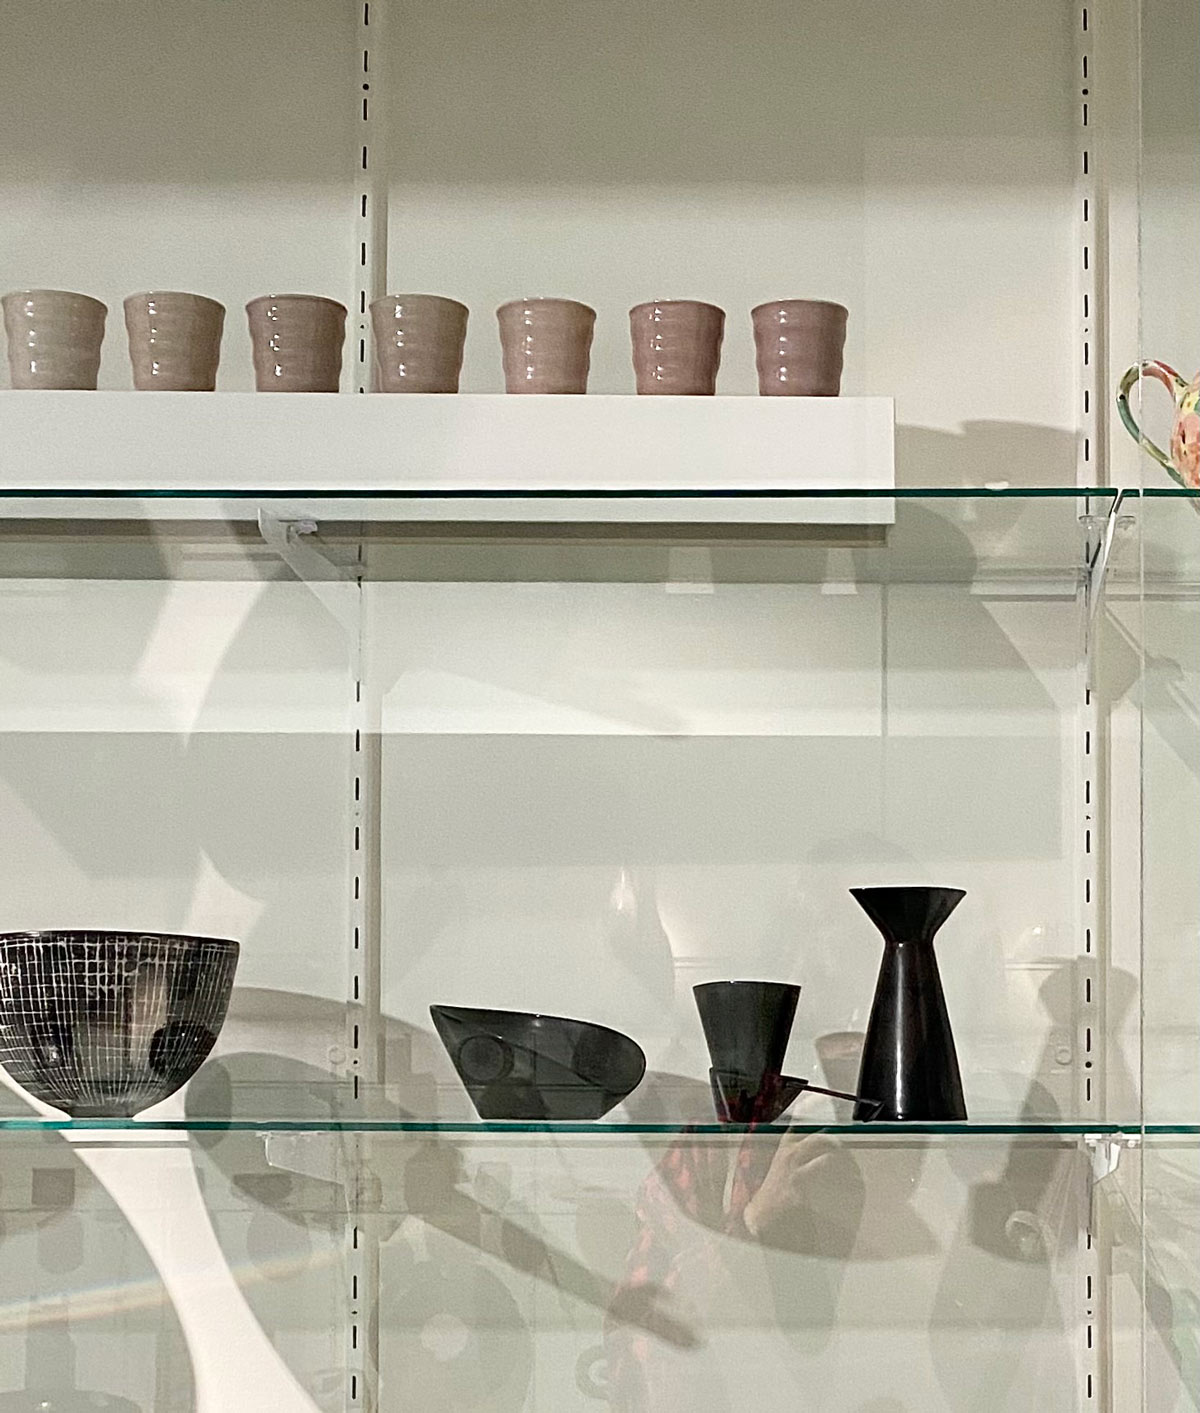 Ceramics Collection at the MAG&M